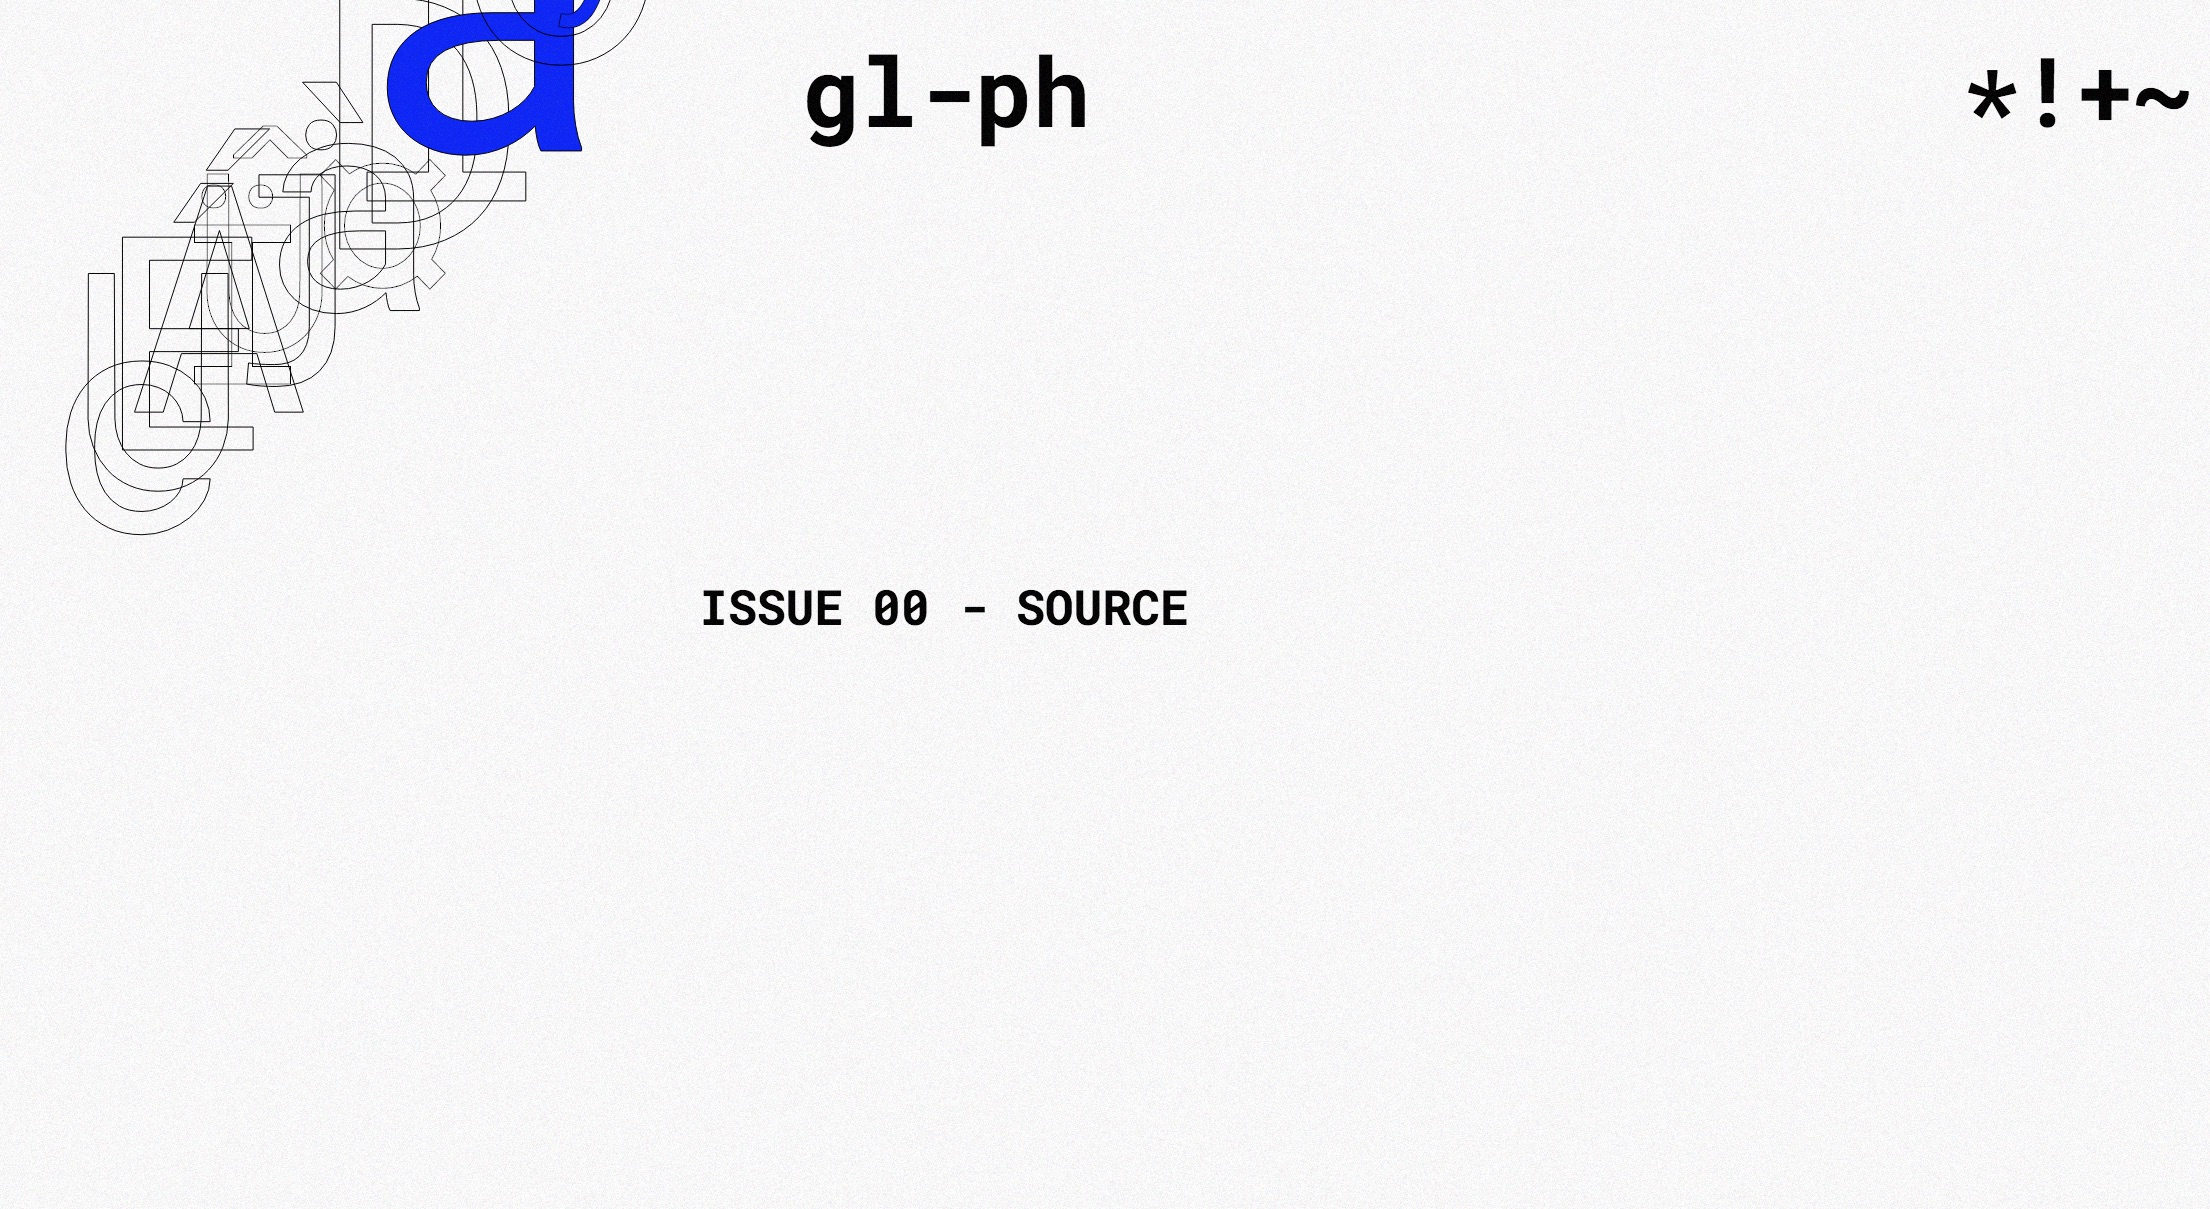 gl-ph: a digital literature journal